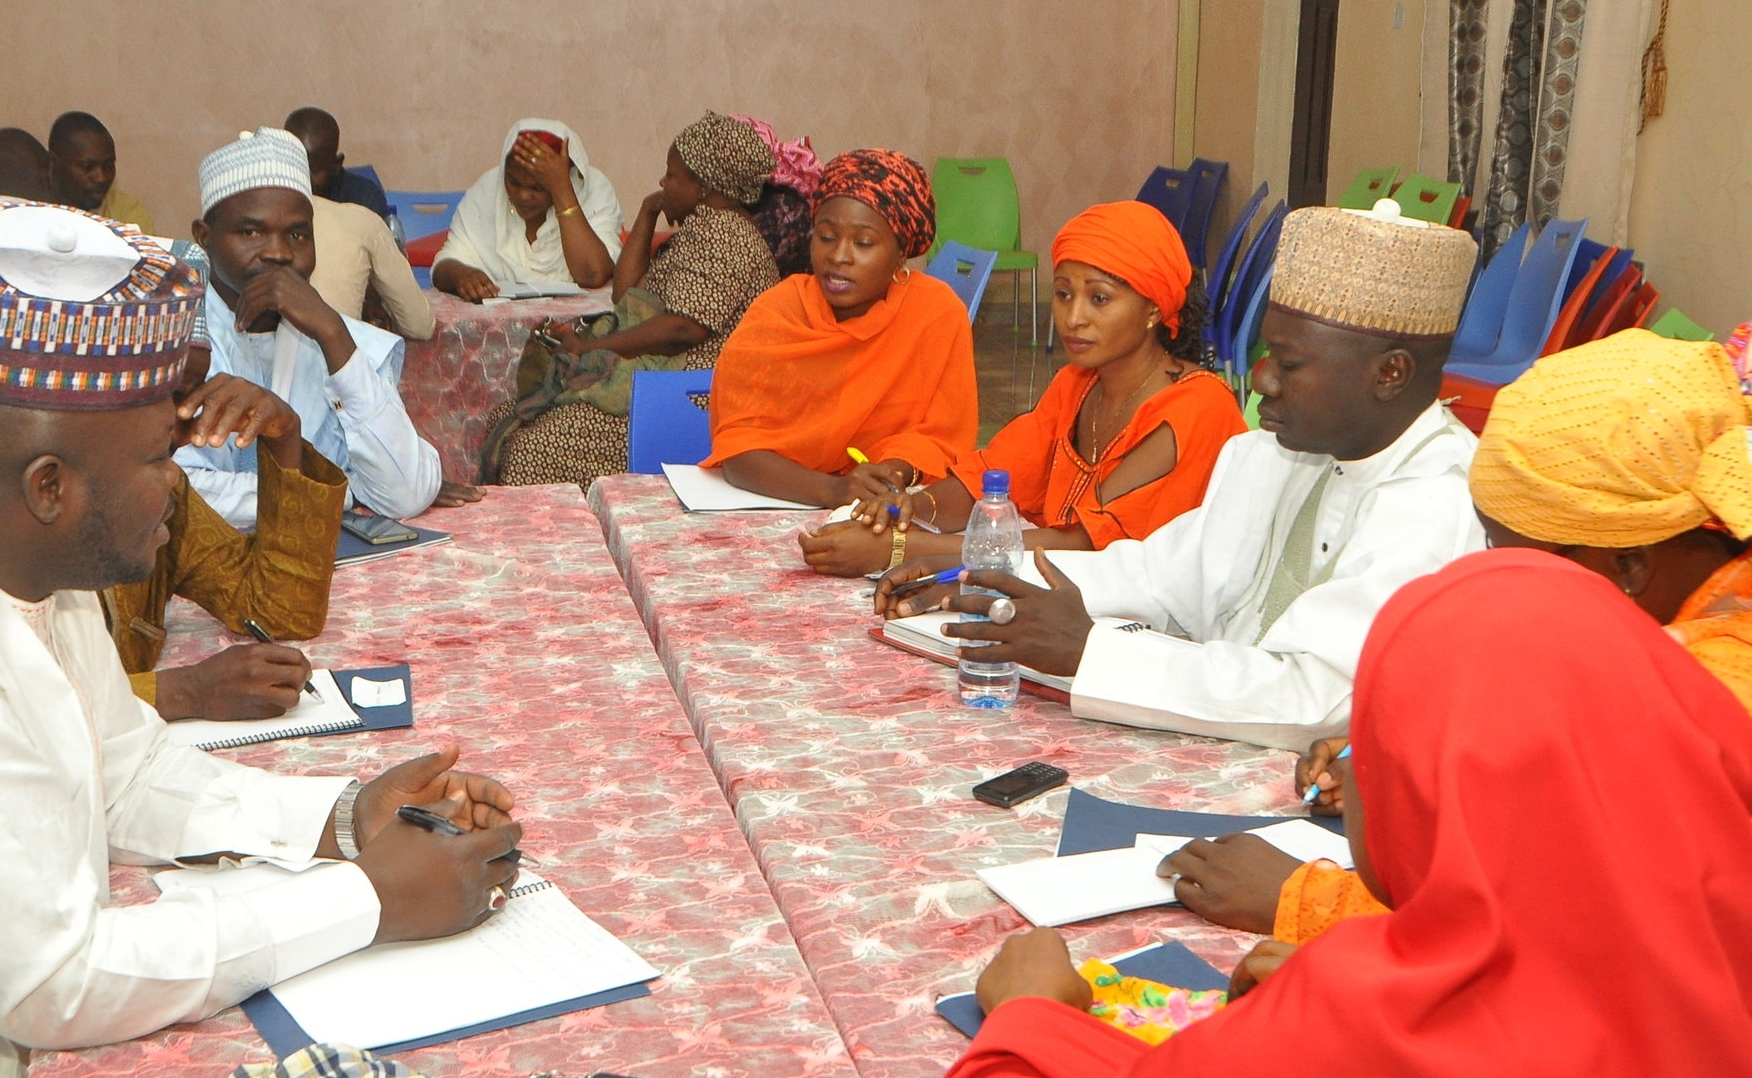 Diversity was key to the success of the training. Here, men and women, muslim and christian, clergy and laity, all came together to tackle common concerns.